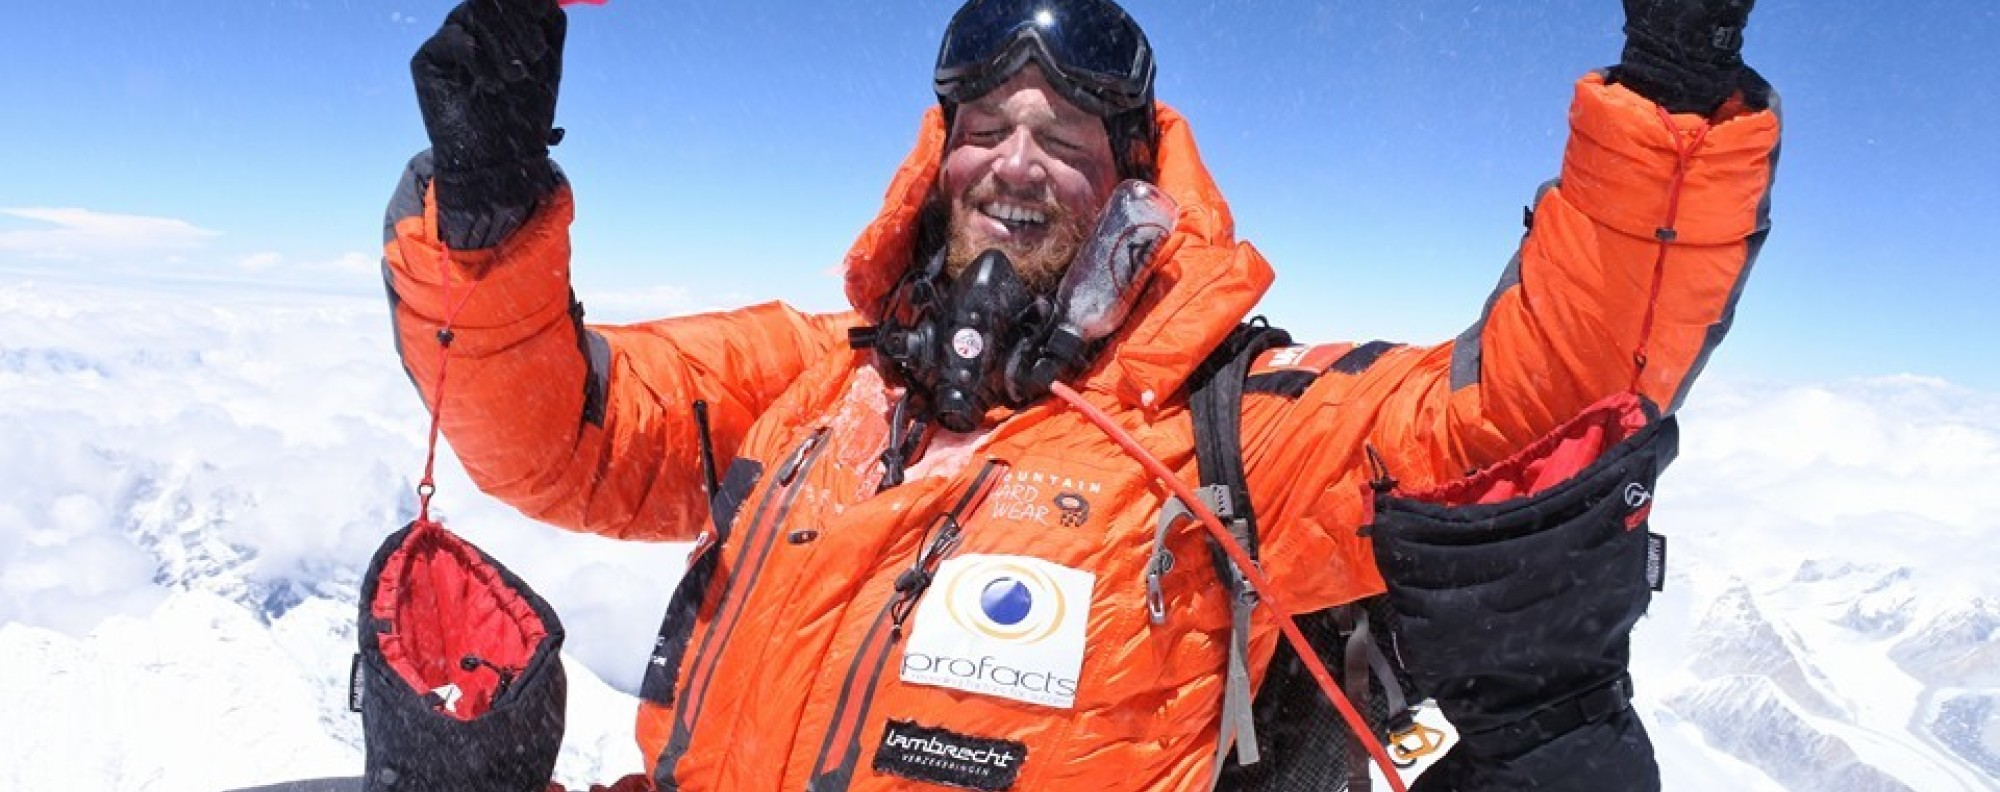 Jelle Veyt on the summit of Everest – the second peak of his seven summit challenge. Photos: Handout